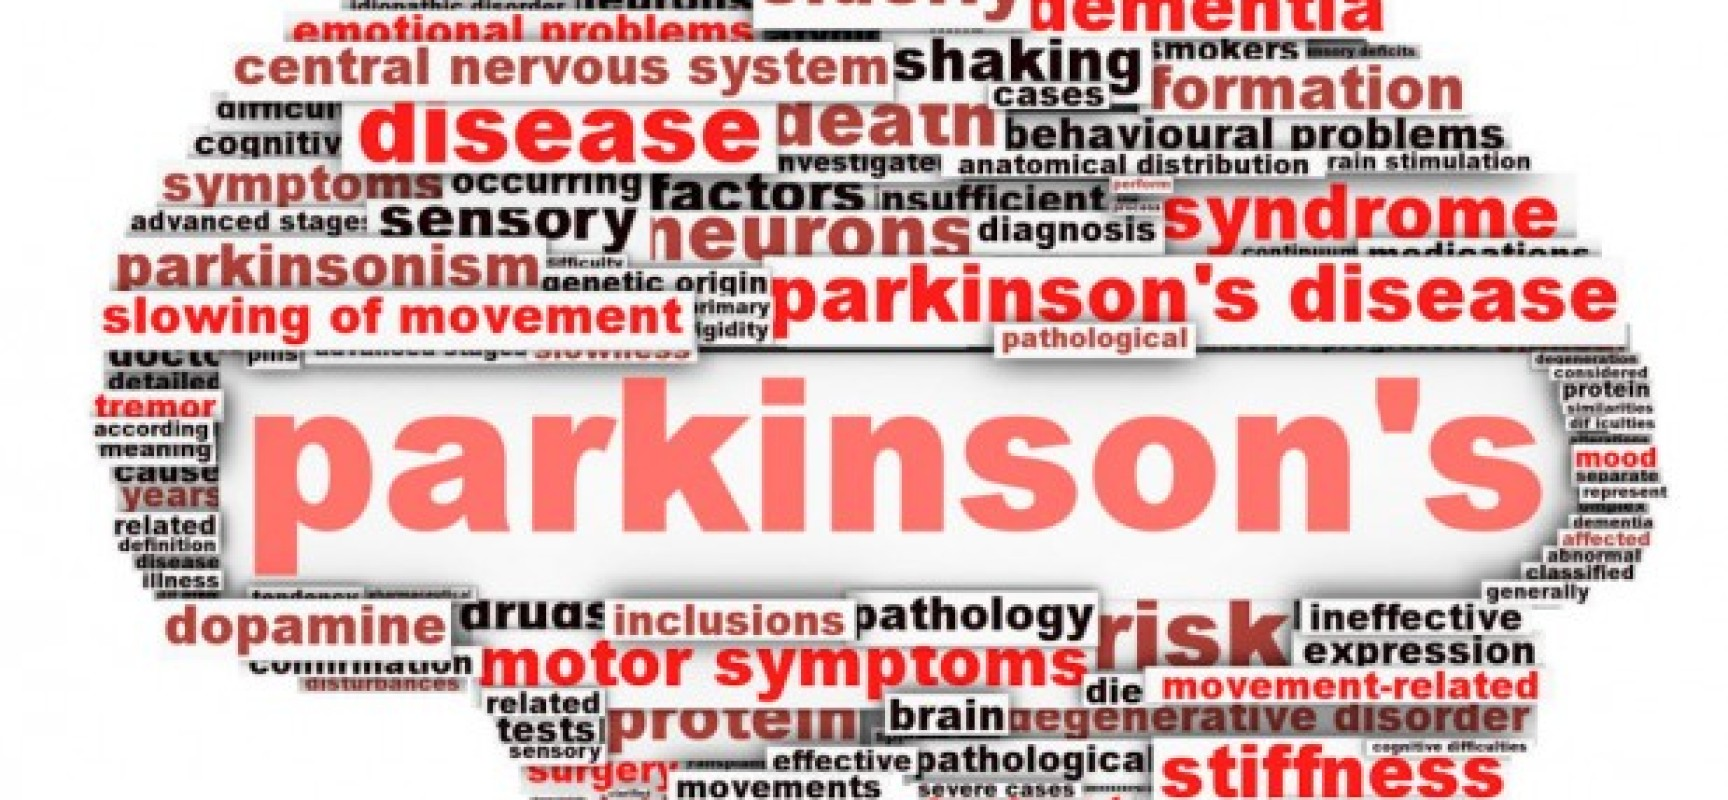 Parkinson's Disease: Early Warning Signs You Can't Ignore